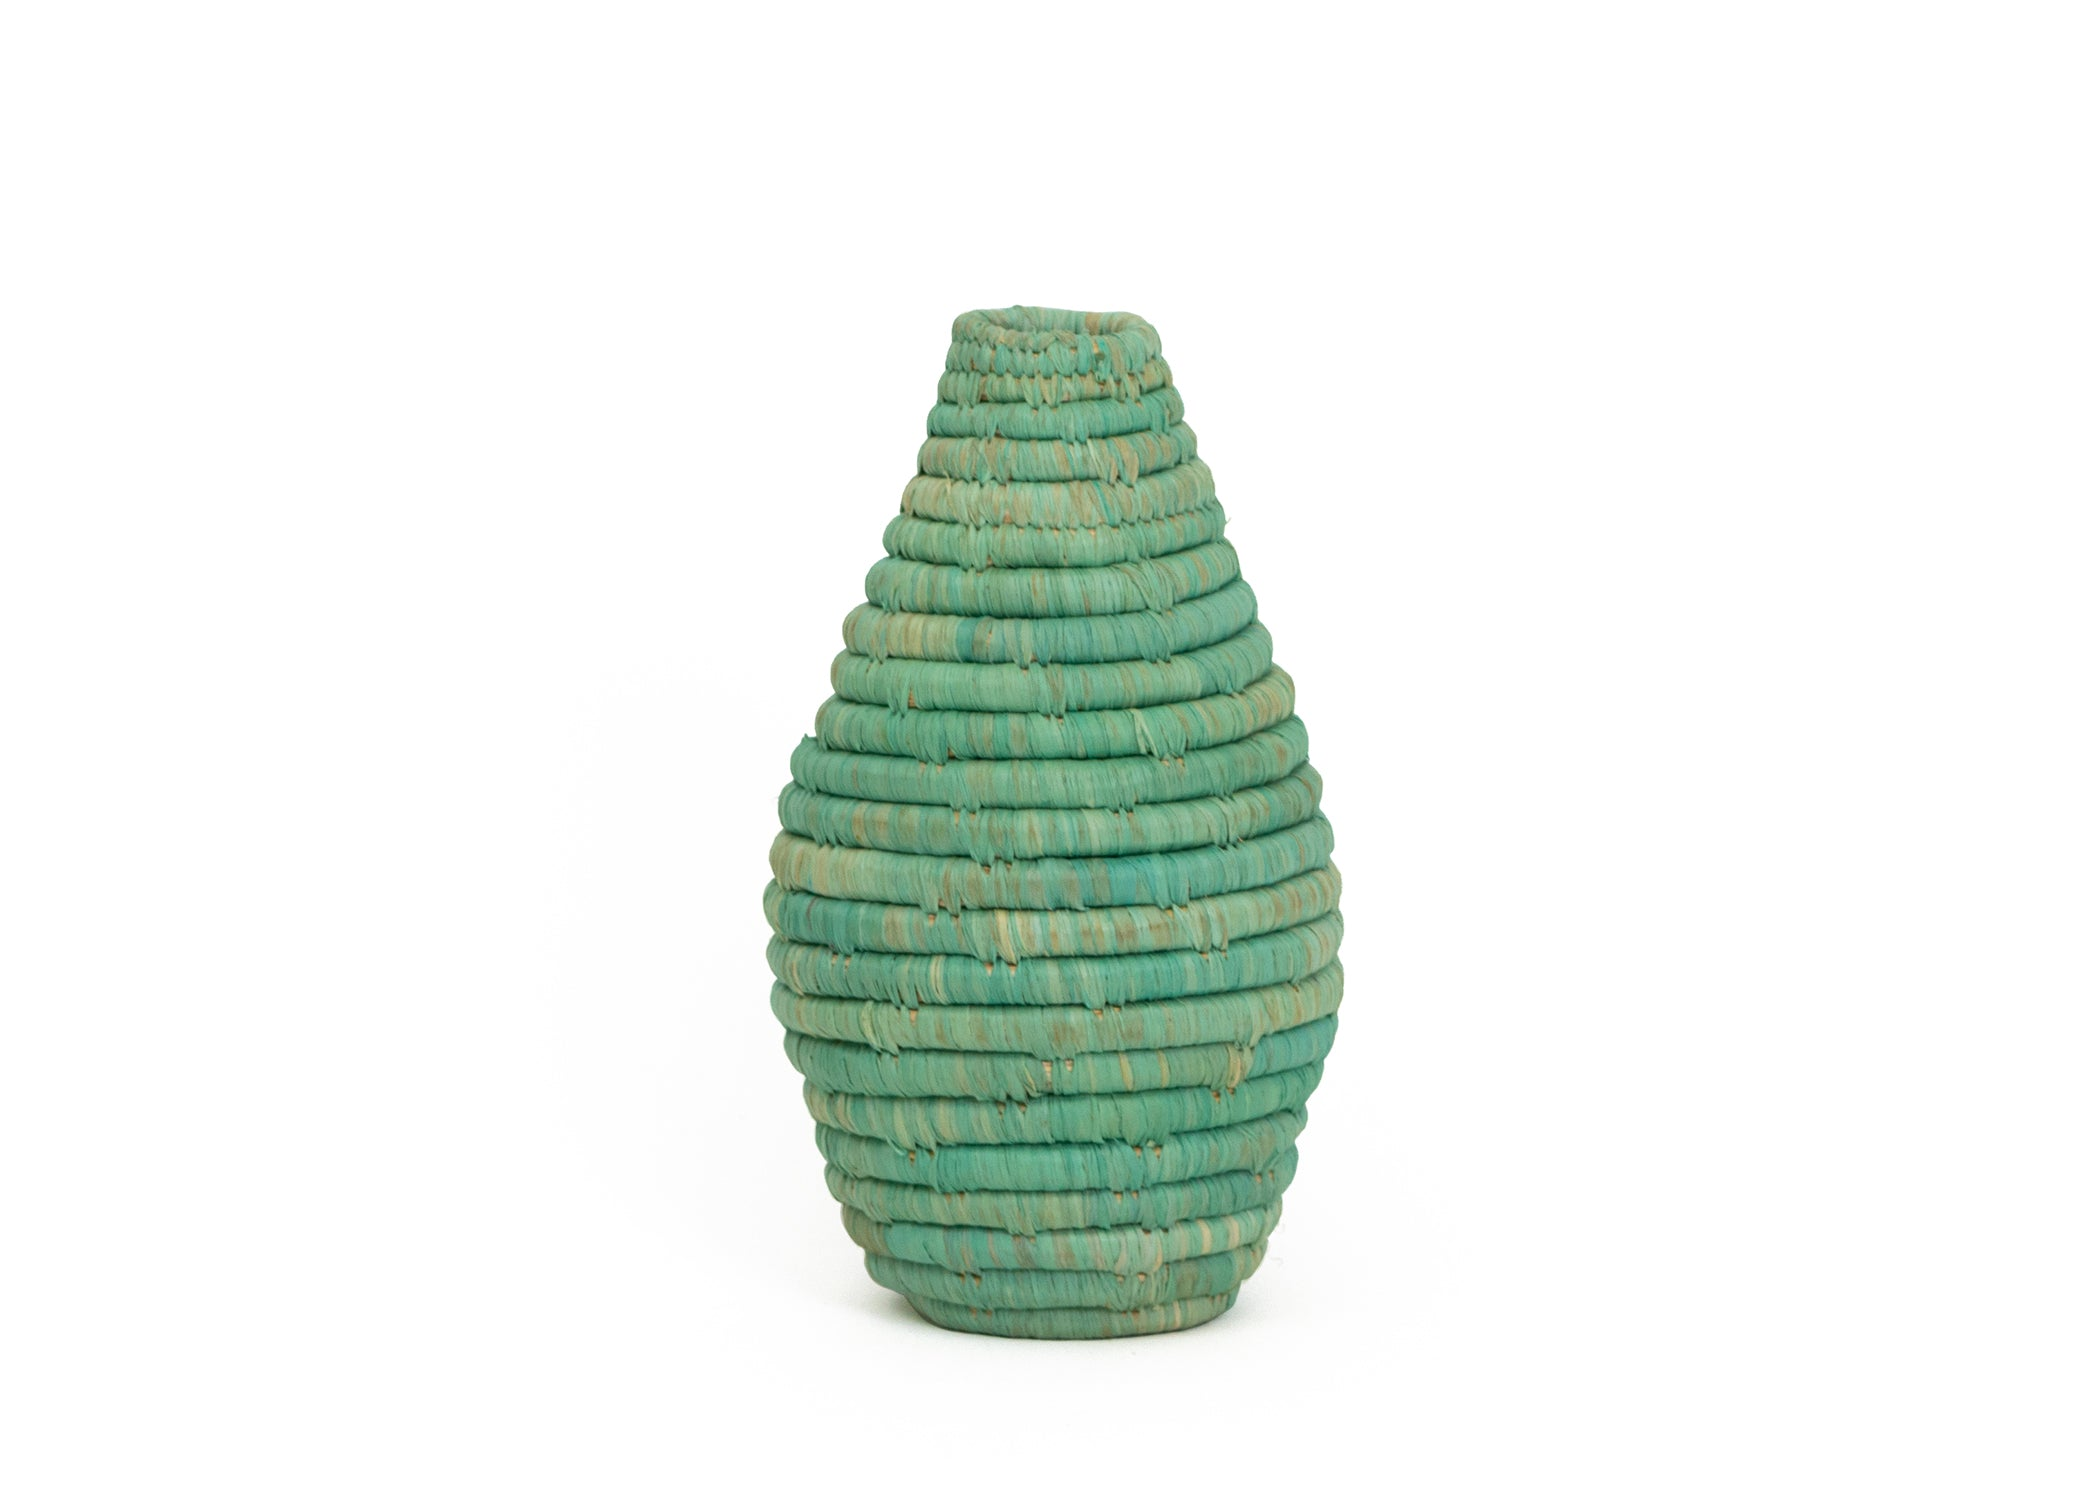 Bermuda Ziwa Vase - KAZI - Artisan made high quality home decor and wall art